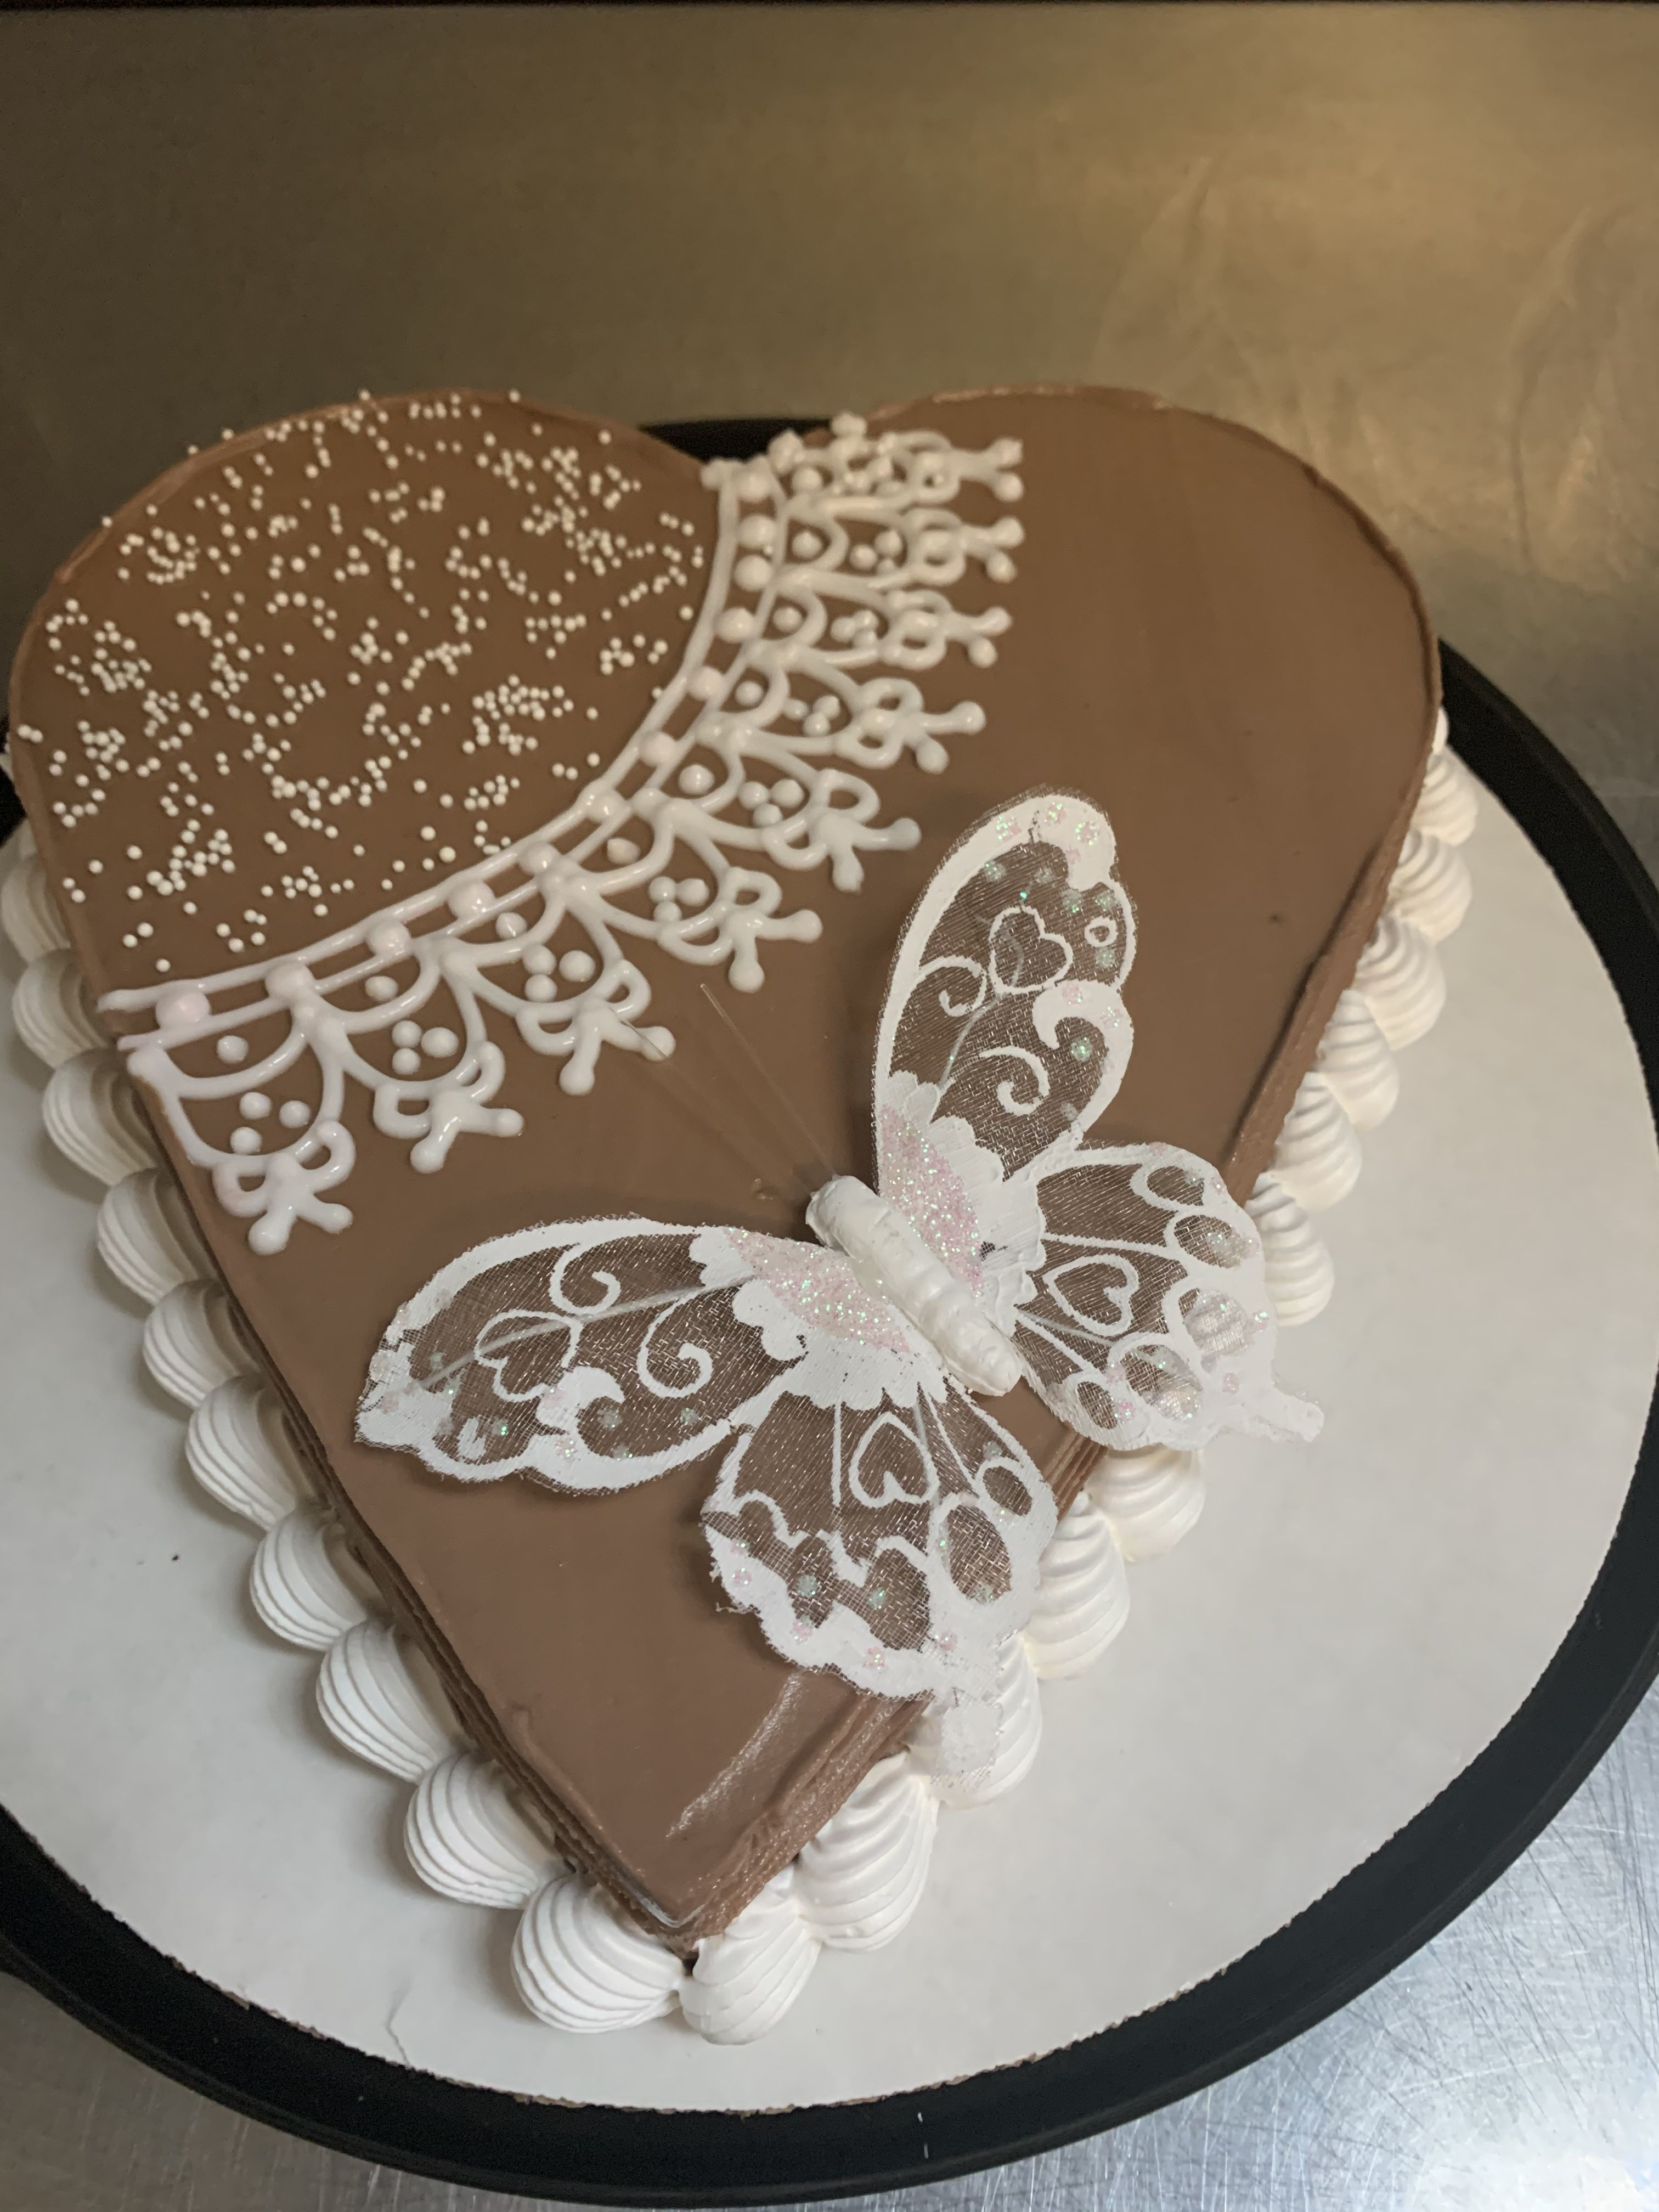 Doily lace chocolate heart cake in 2020 cake chocolate